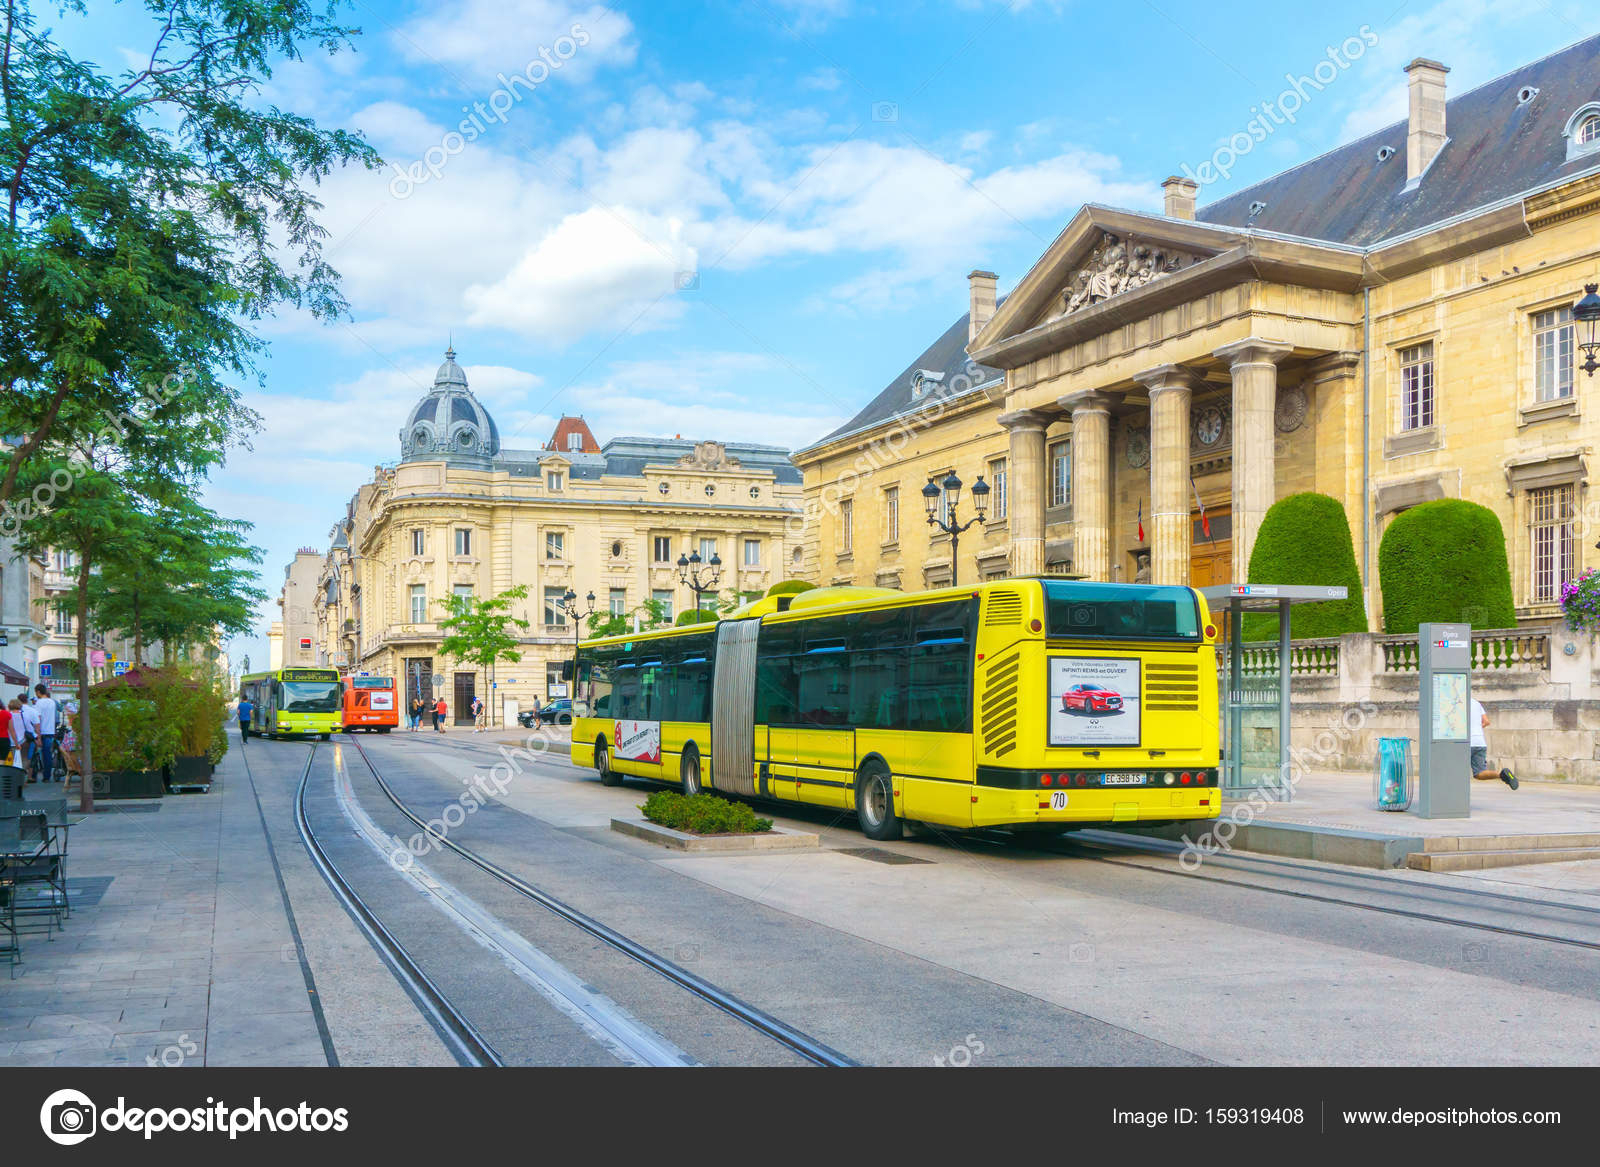 Reims France - June 17, 2017 : Tram On The Streets And serapportantà Region De France 2017